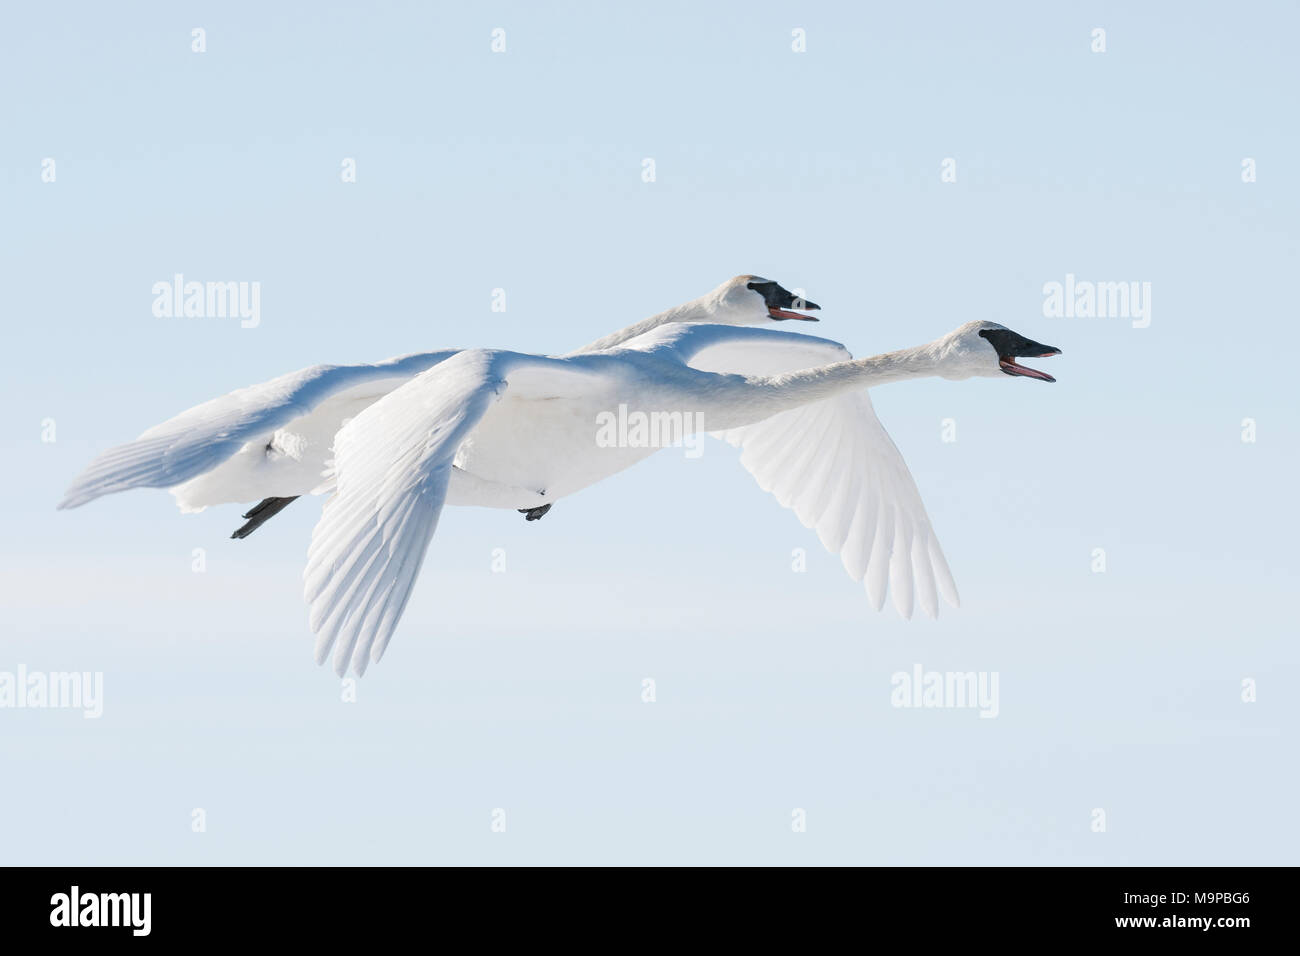 Trumpeter swans (Cygnus buccinator) flying, WI, USA, mid-February, by Dominique Braud/Dembinsky Photo Assoc, - Stock Image